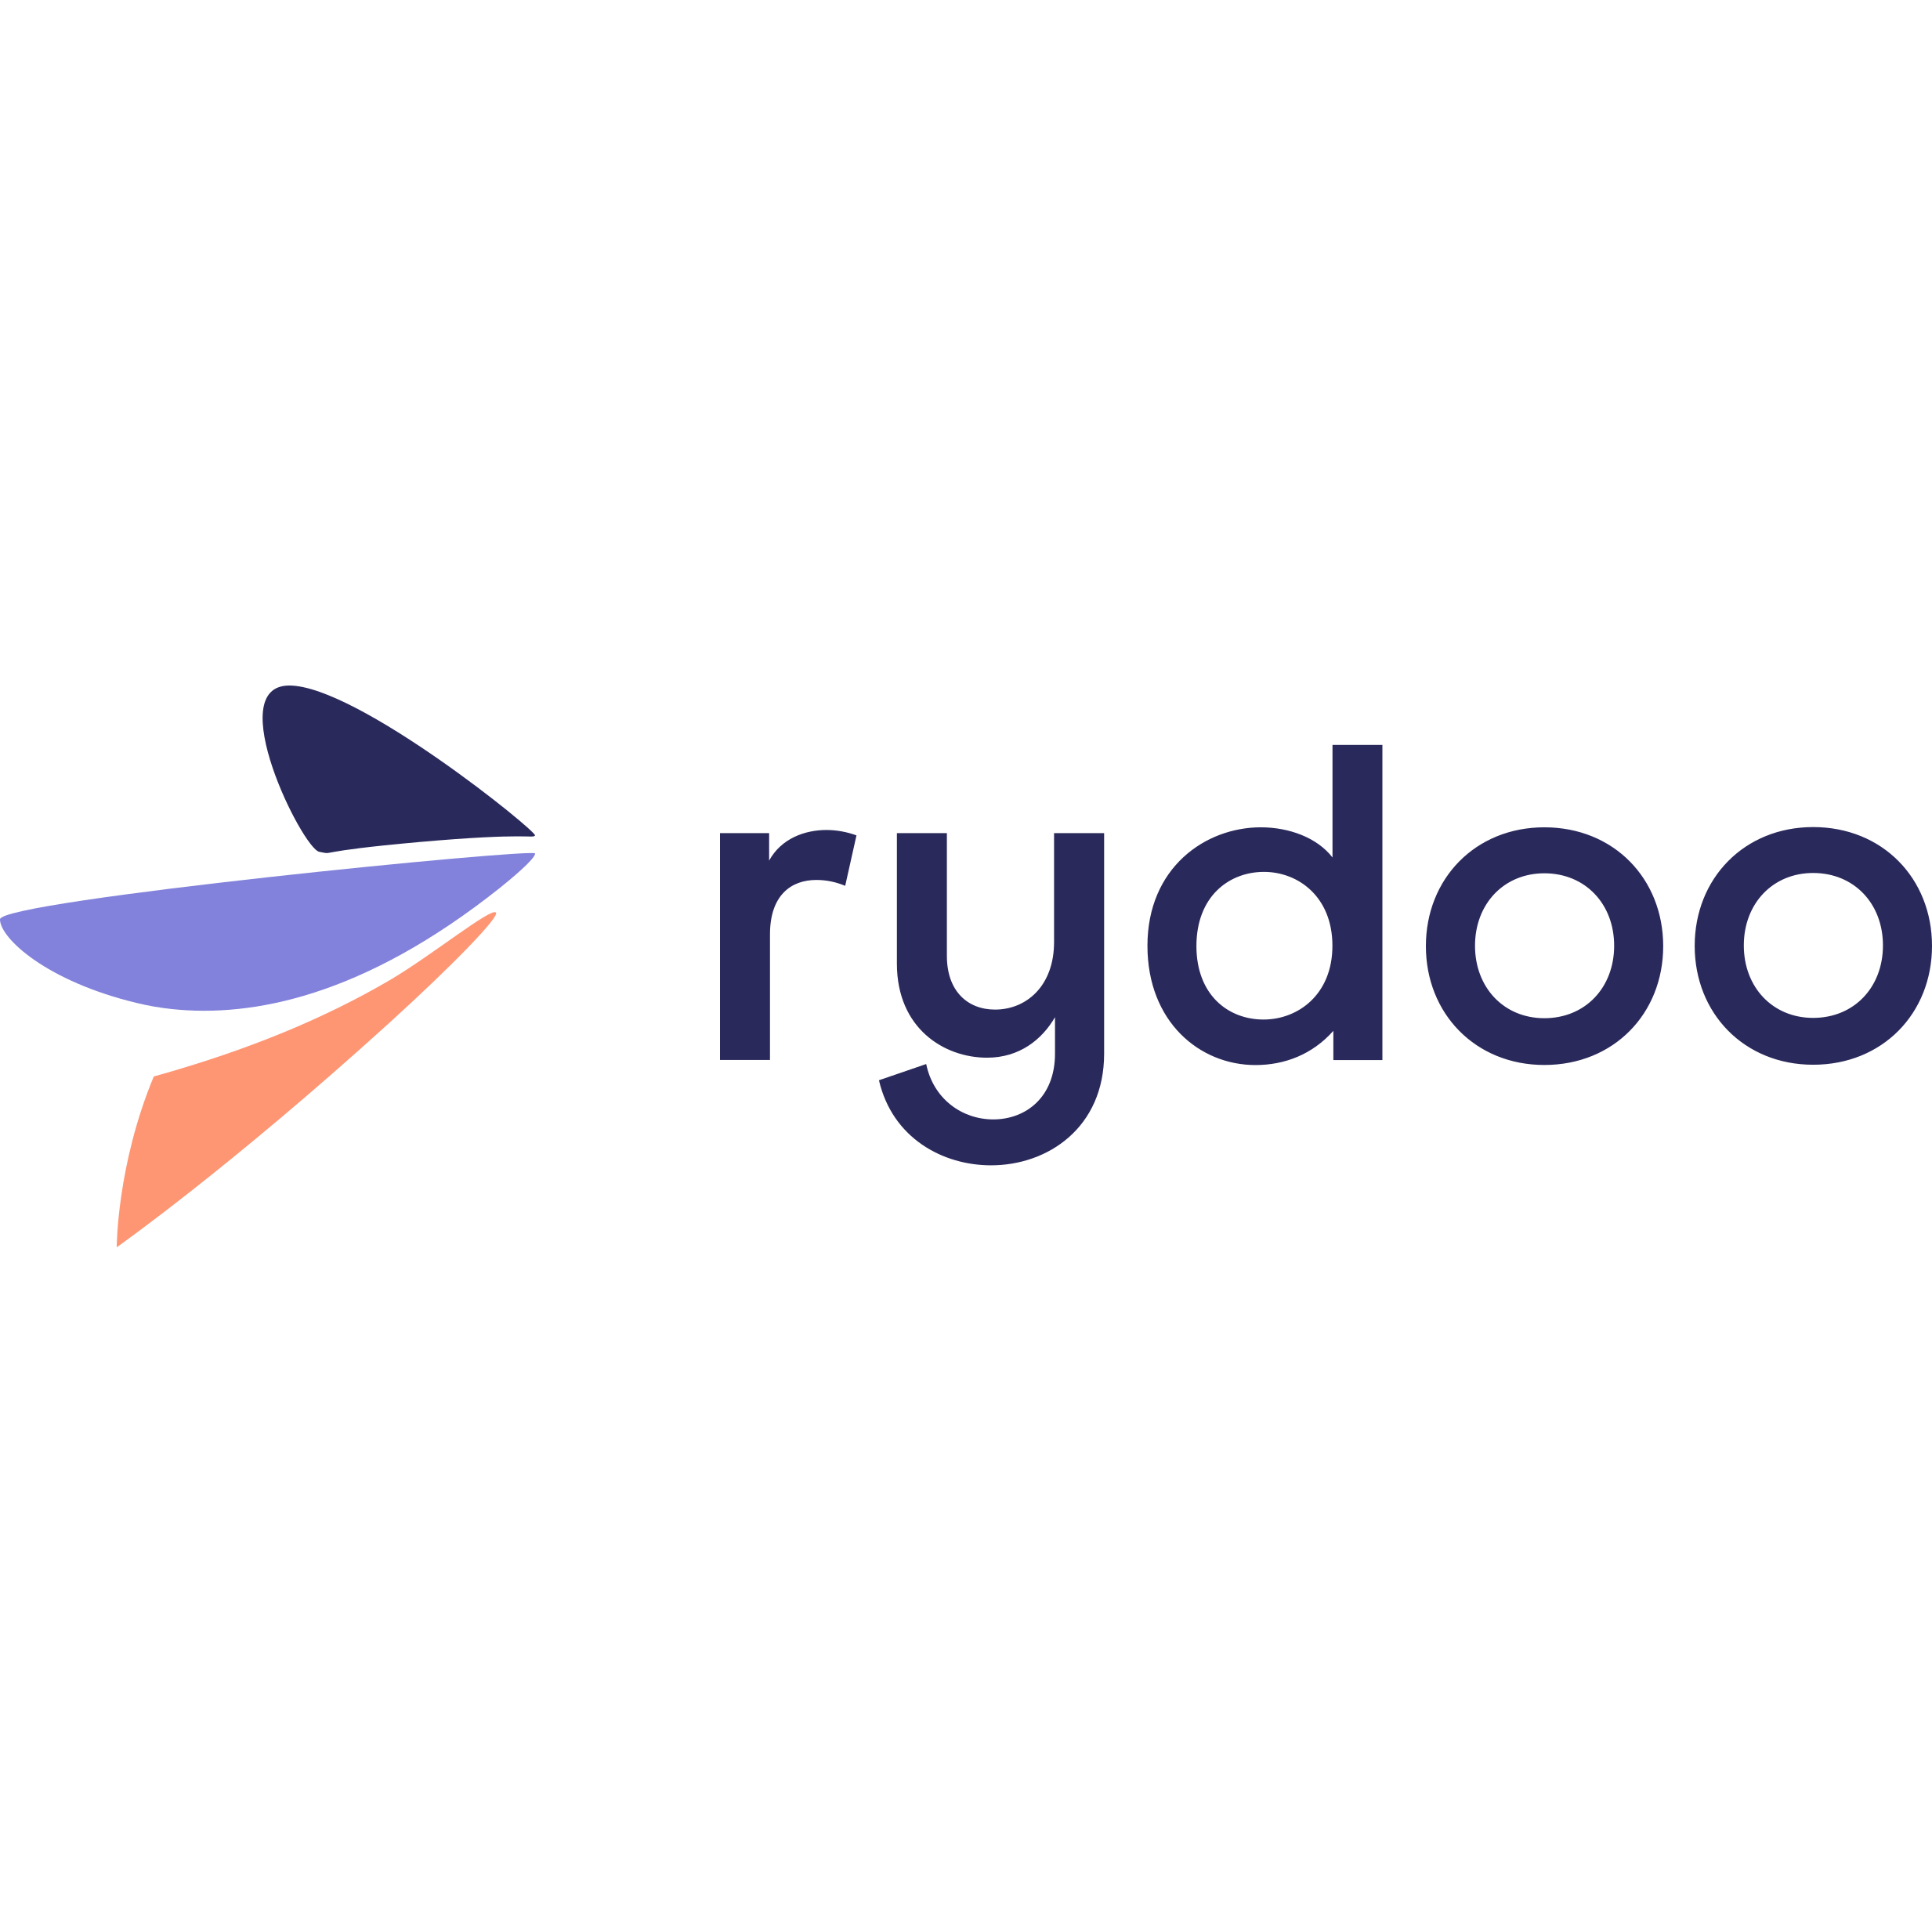 Rydoo - Expense Management Software : SaaSworthy.com